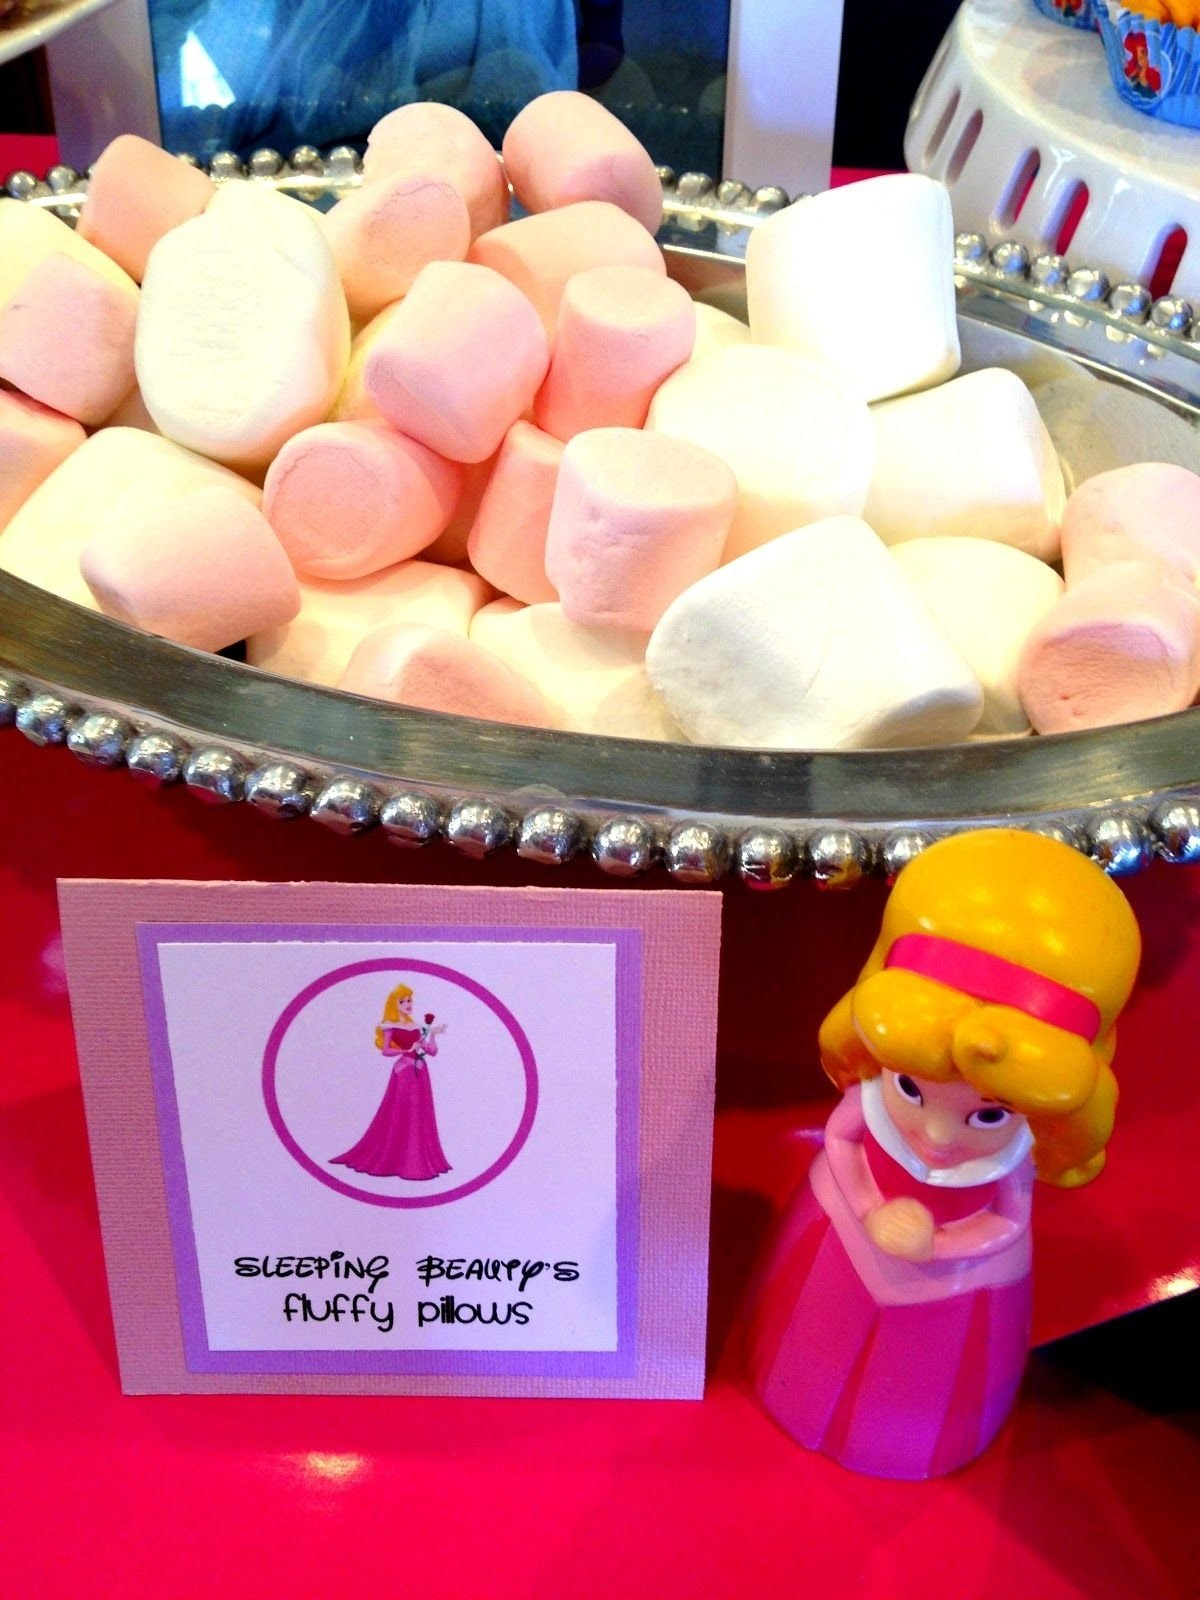 10 Nice Princess Tea Party Food Ideas princess party ideas snacks and more so cute princess nykas puffy 2